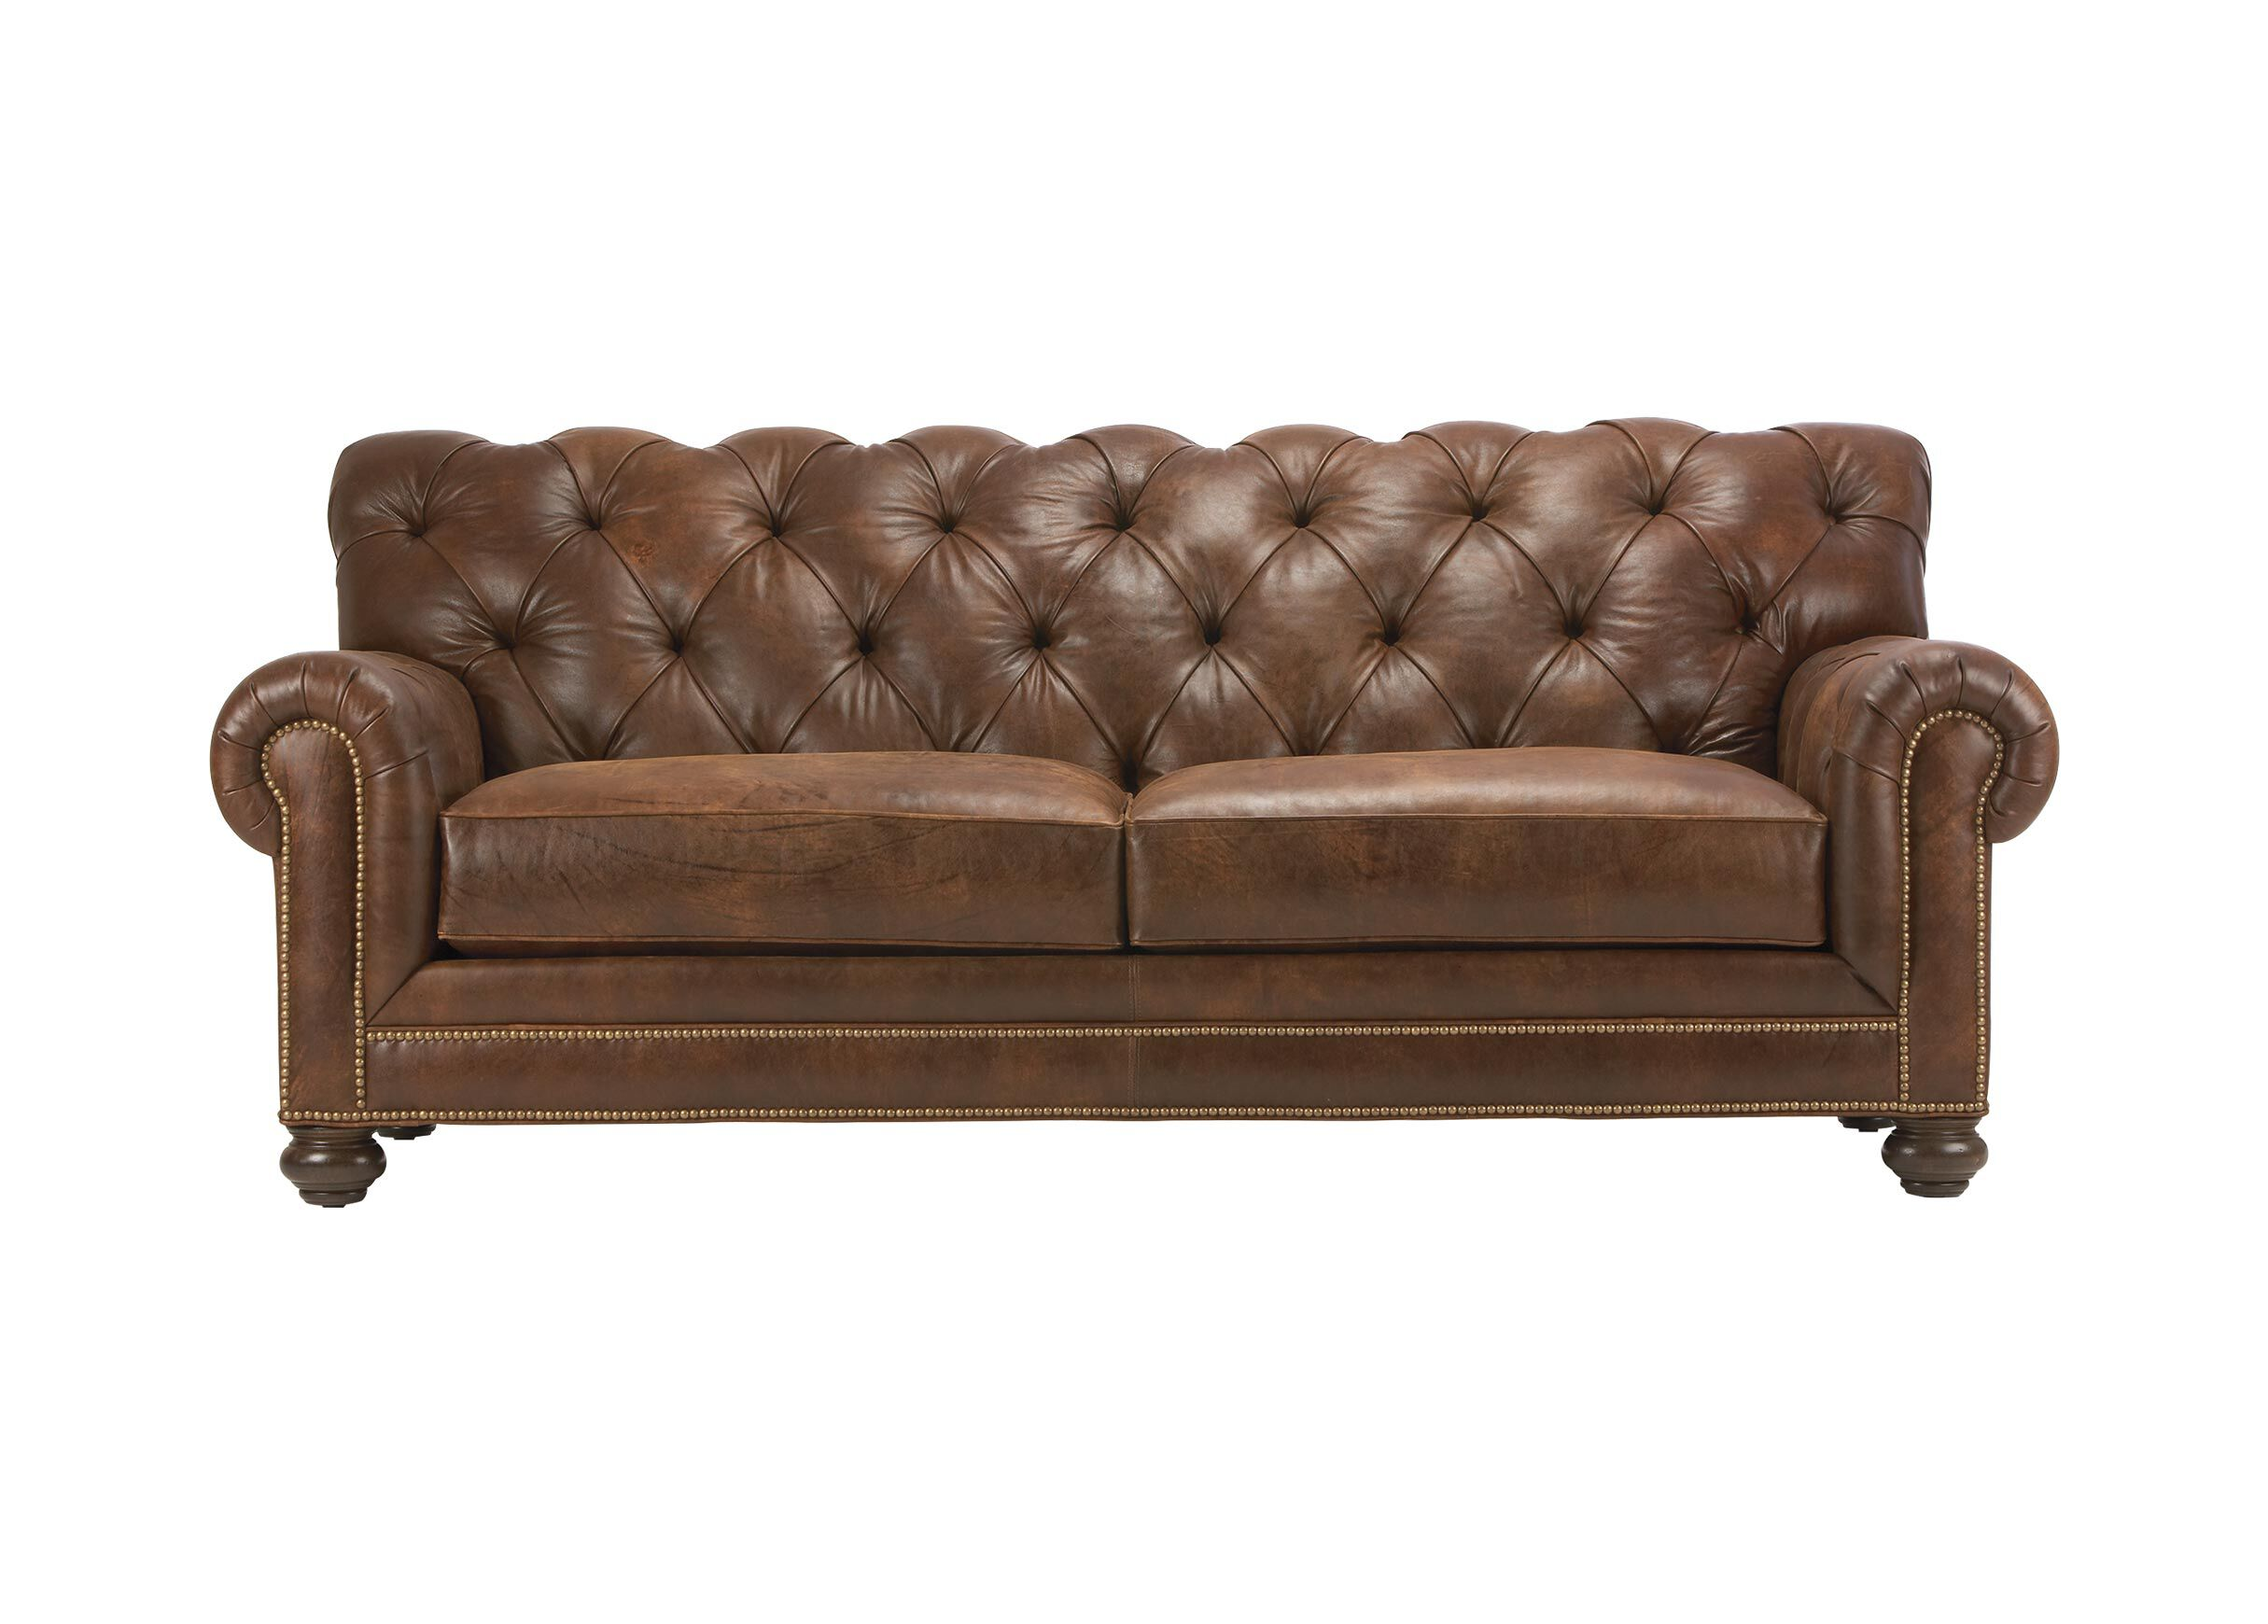 chadwick sofa nicolo 5 piece leather reclining sectional sofas loveseats ethan allen selected 1